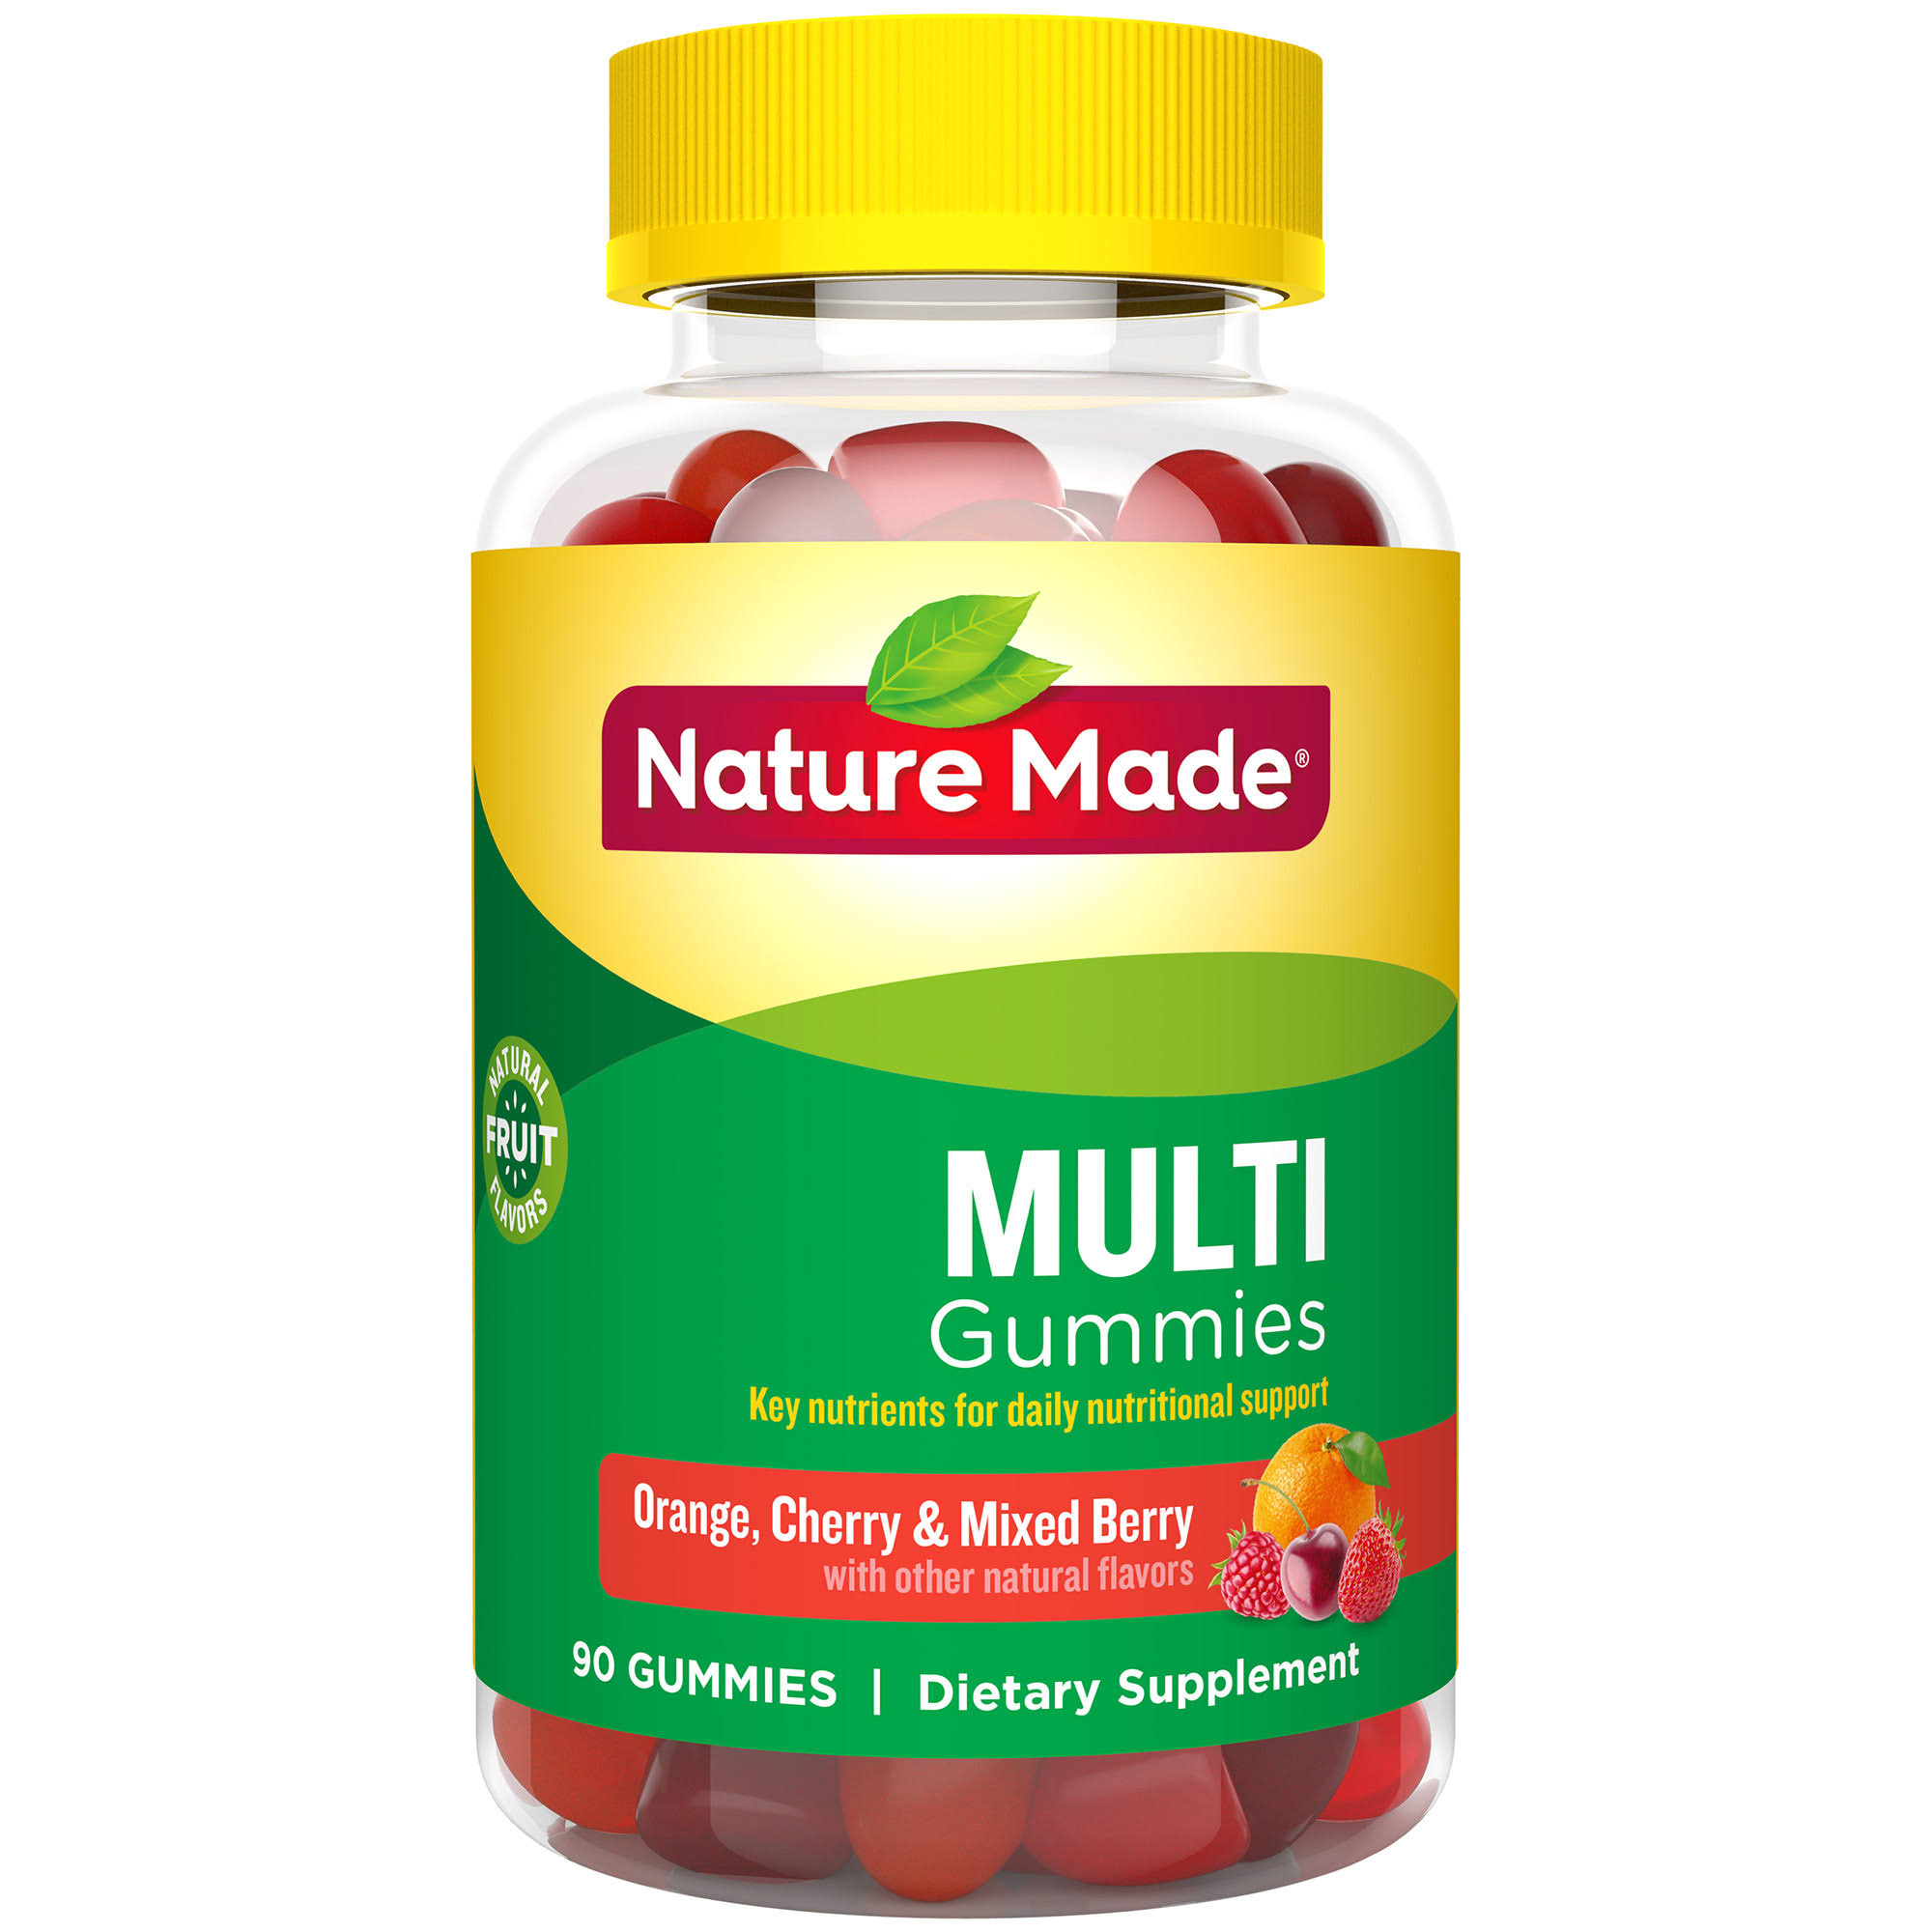 Nature Made Multi Adult Gummies - Orange, Cherry and Mixed Berry, 90ct